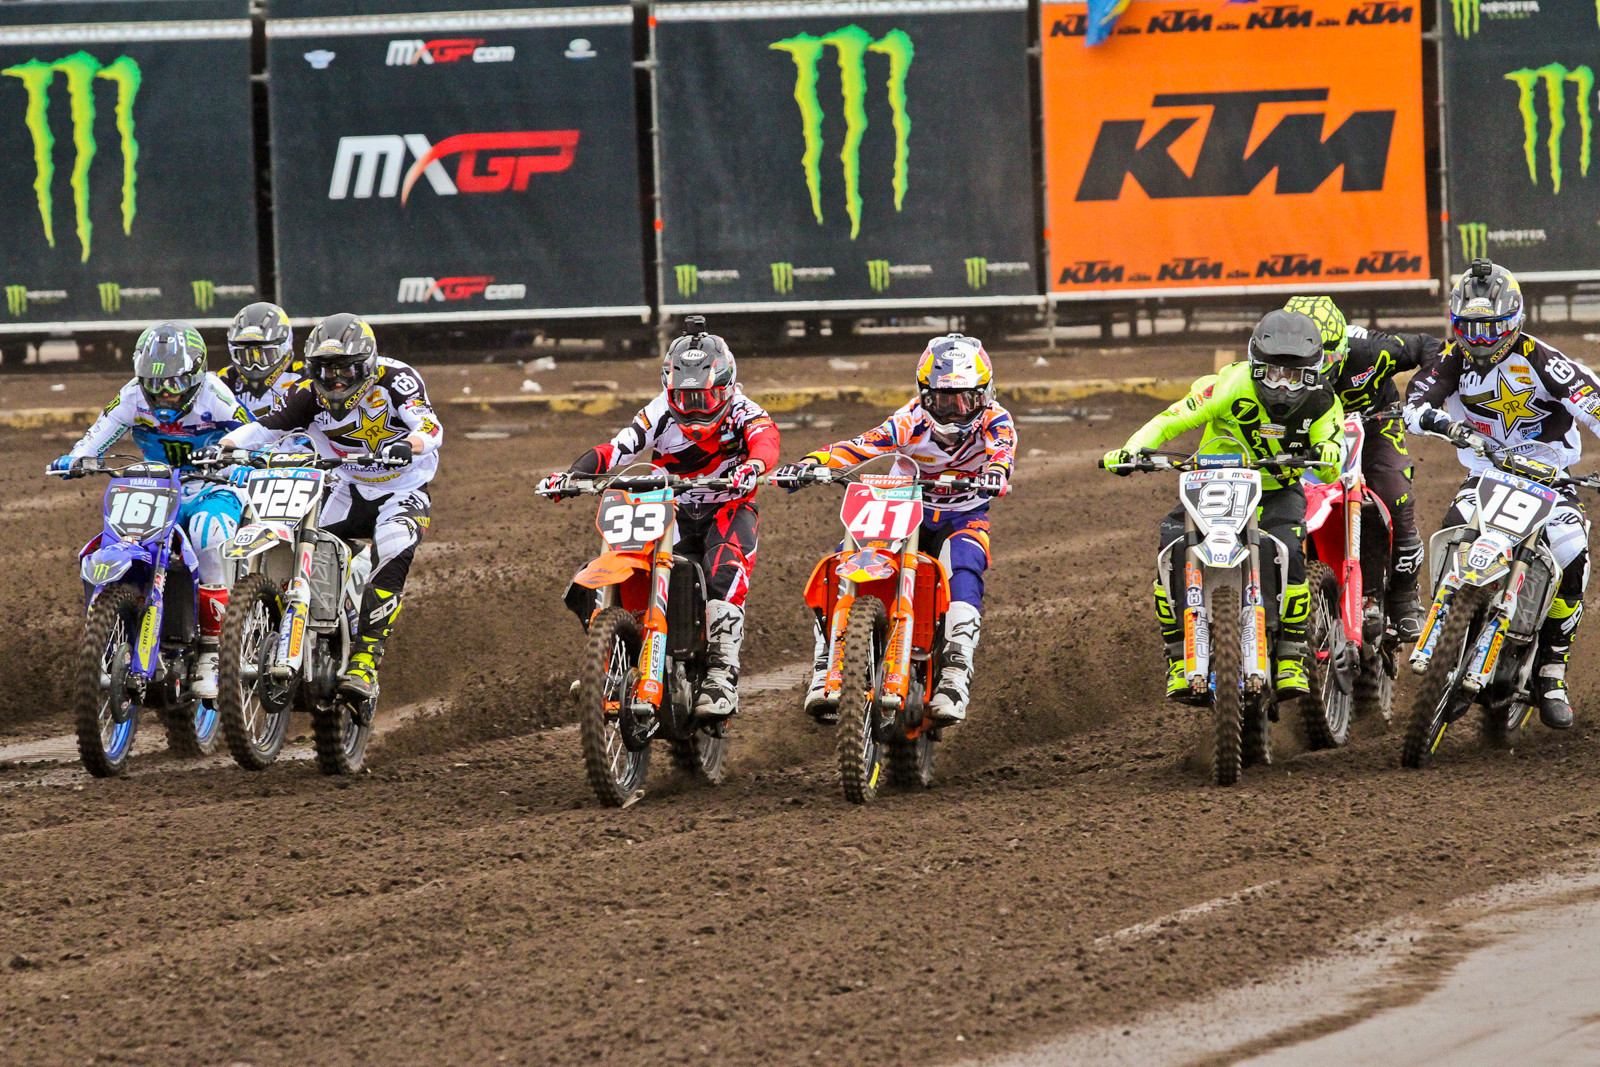 MX2 Start - Photo Blast: 2017 MXGP of Valkenswaard - Motocross Pictures - Vital MX